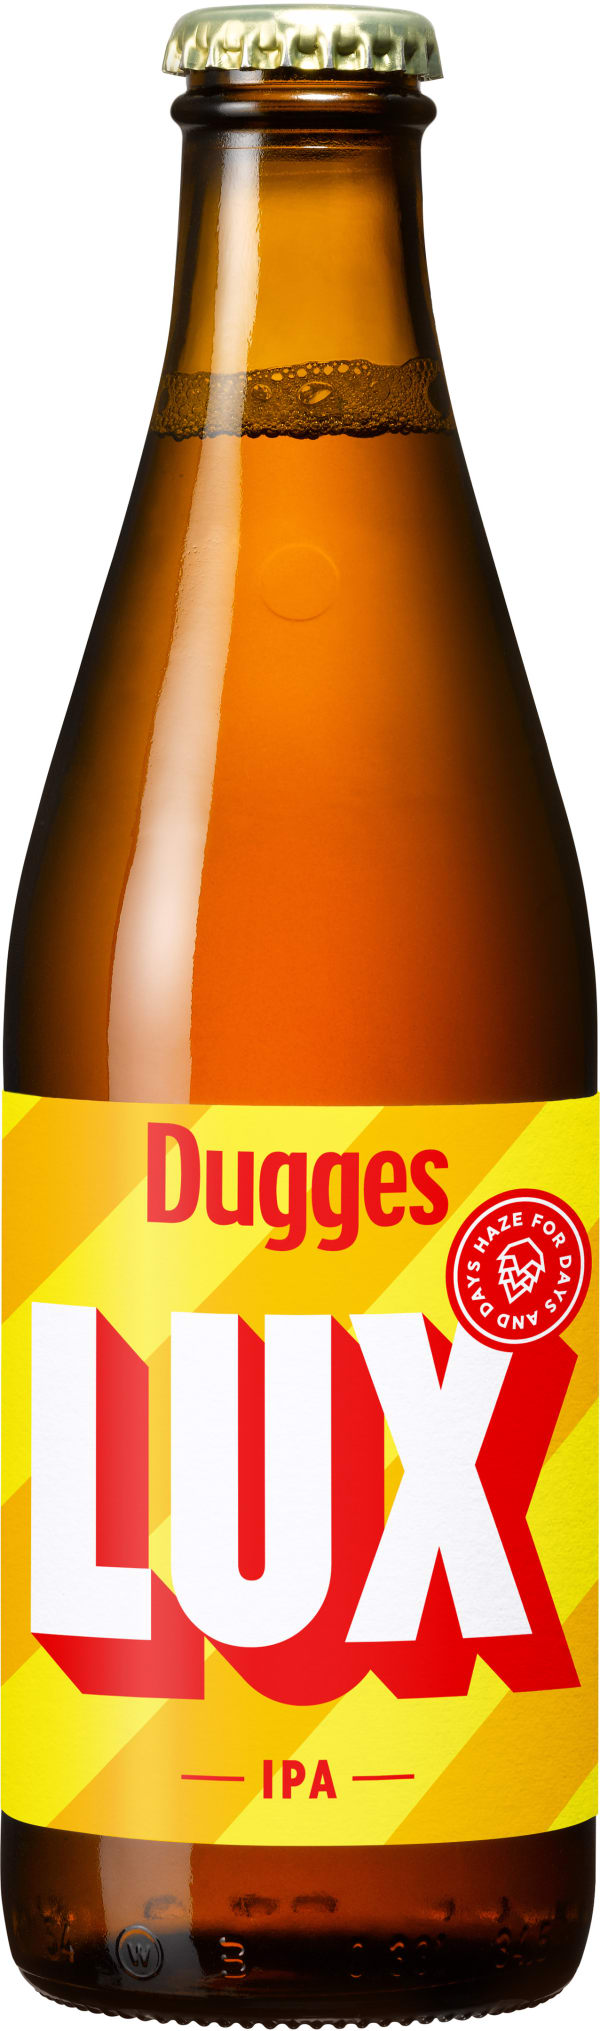 Dugges Lux IPA